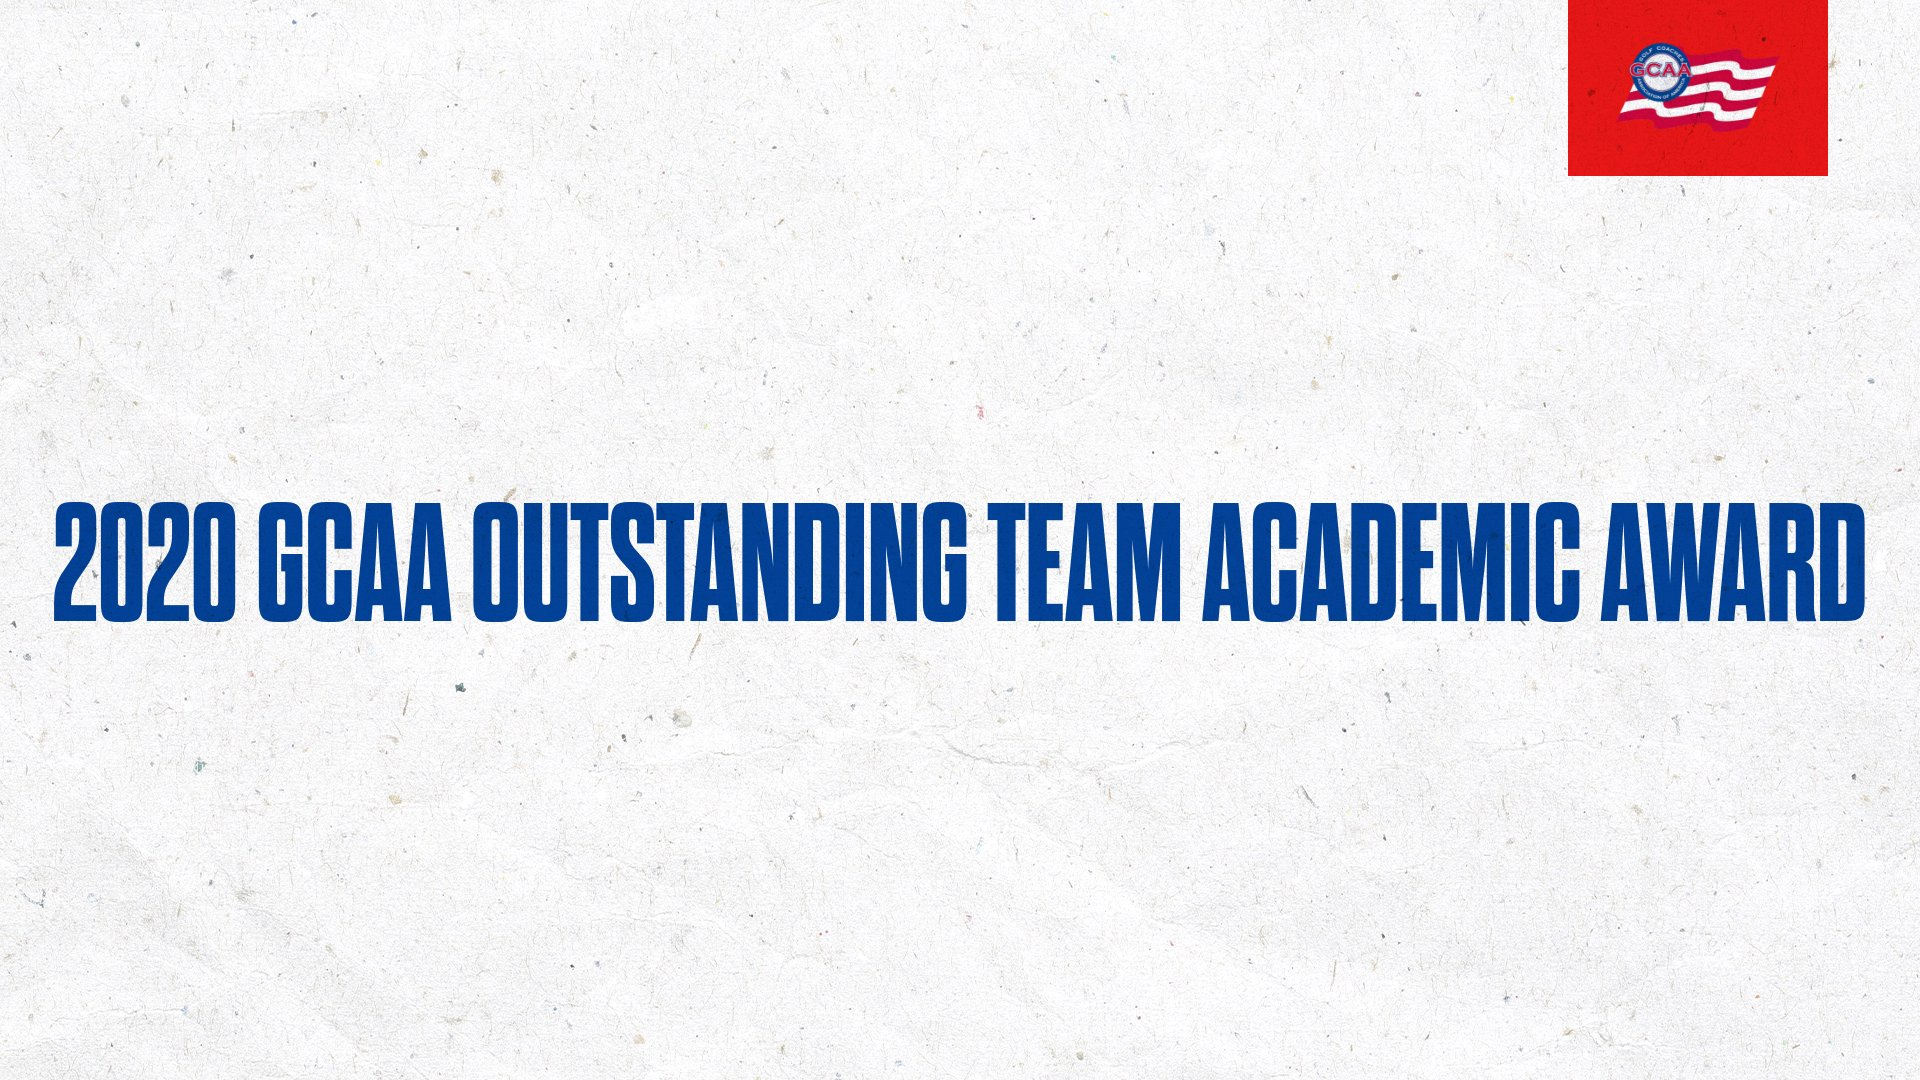 GCAA Announces 2019-20 Outstanding Team Academic Award Winners